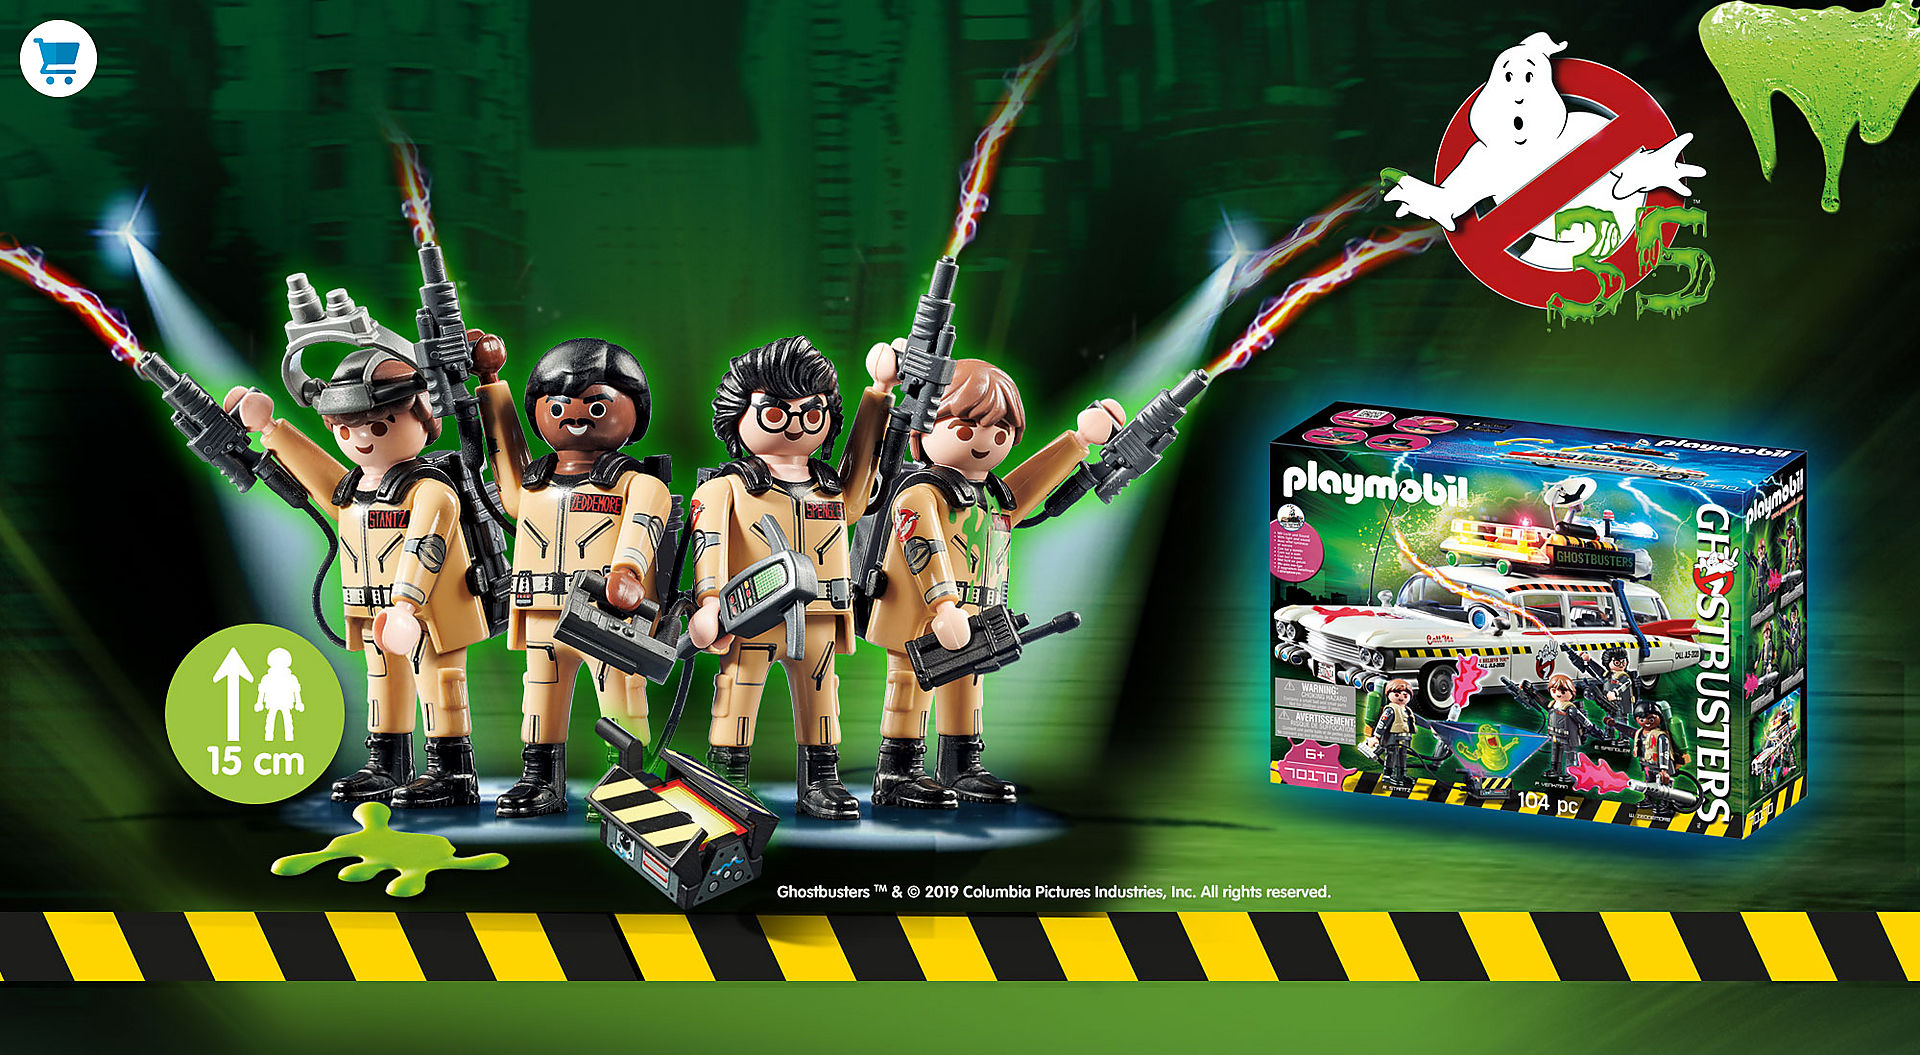 SHOP_SONY_GHOSTBUSTERS_2019_3x2_DE